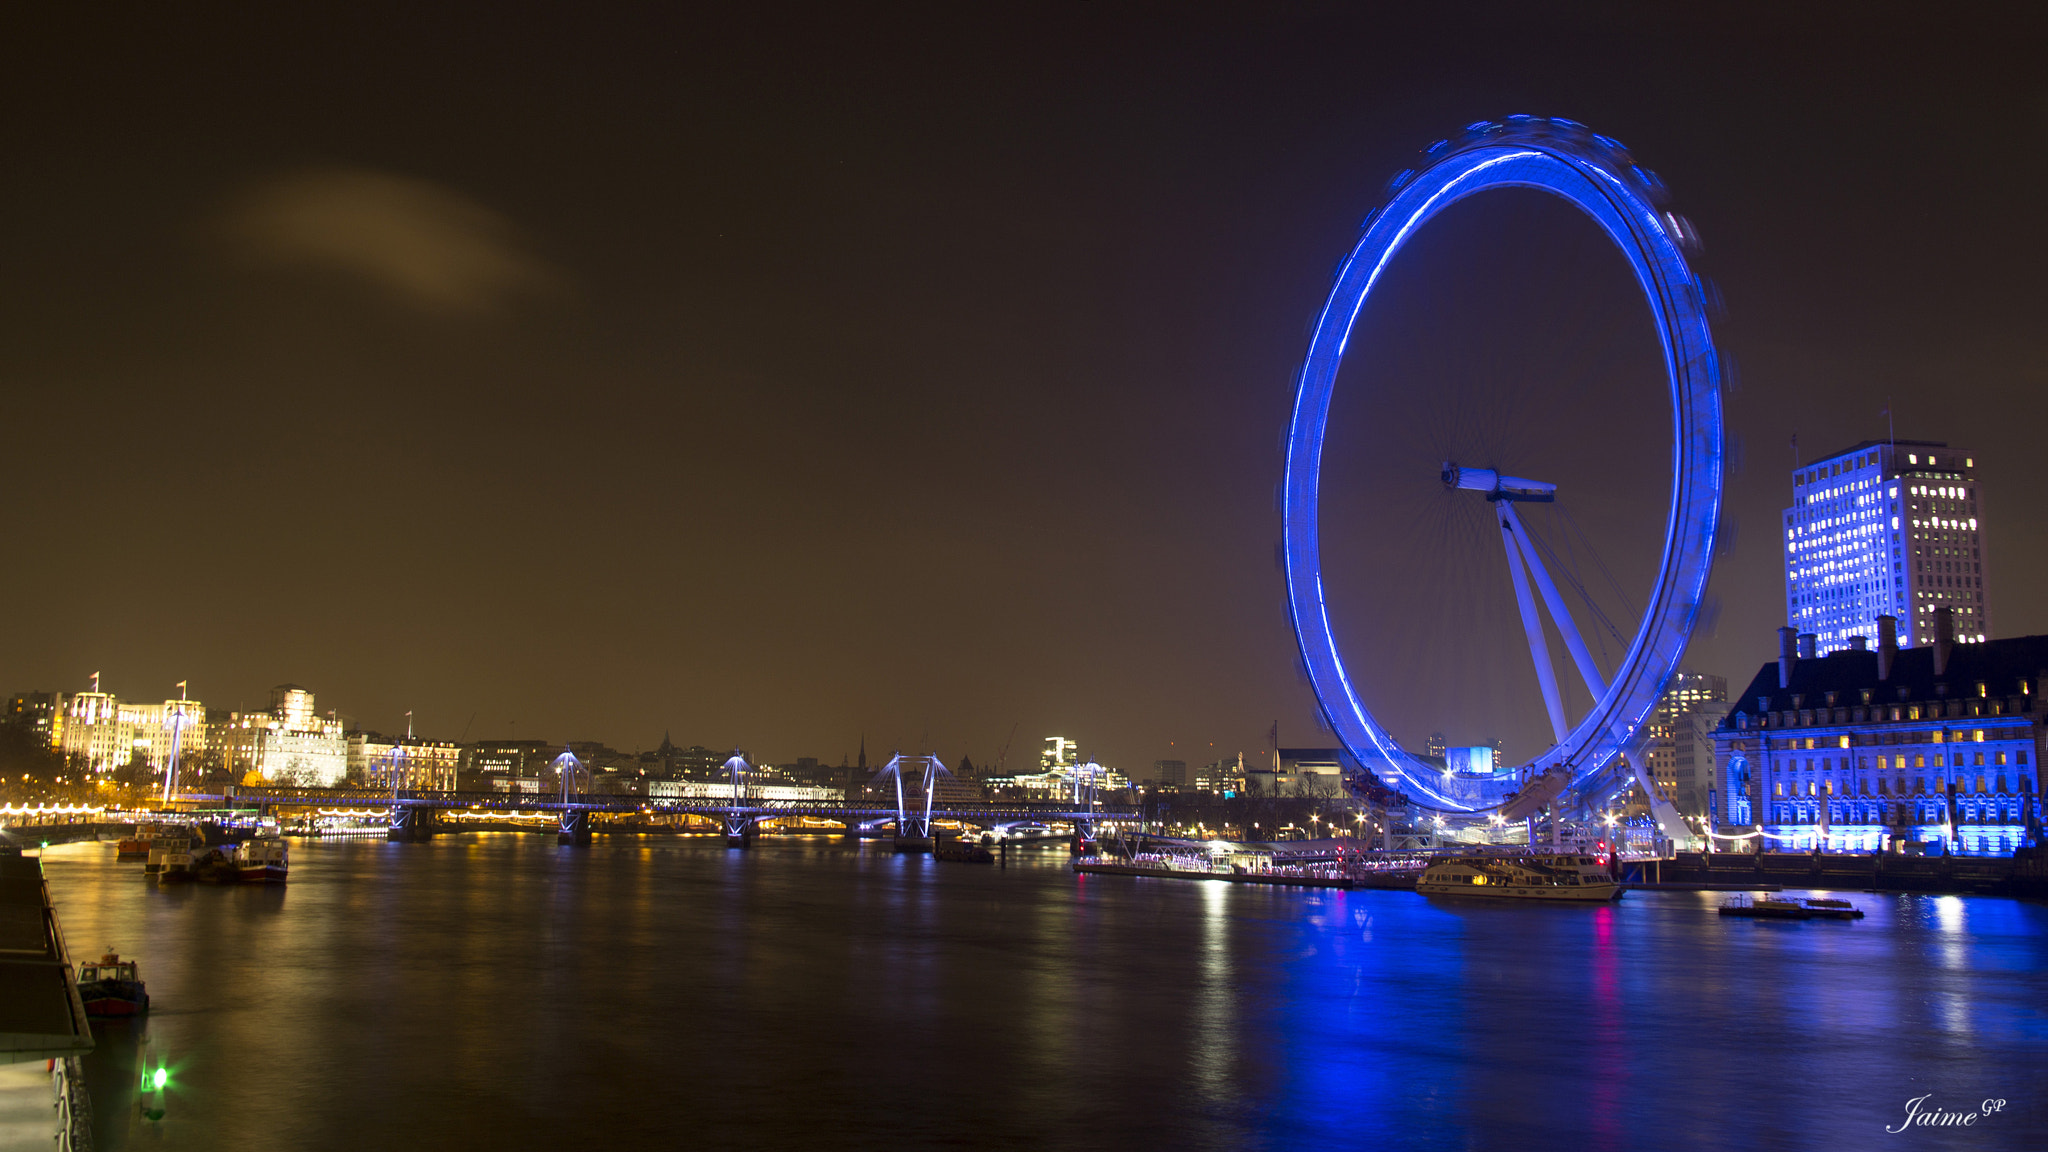 Photograph Thames night by Jaime GP on 500px